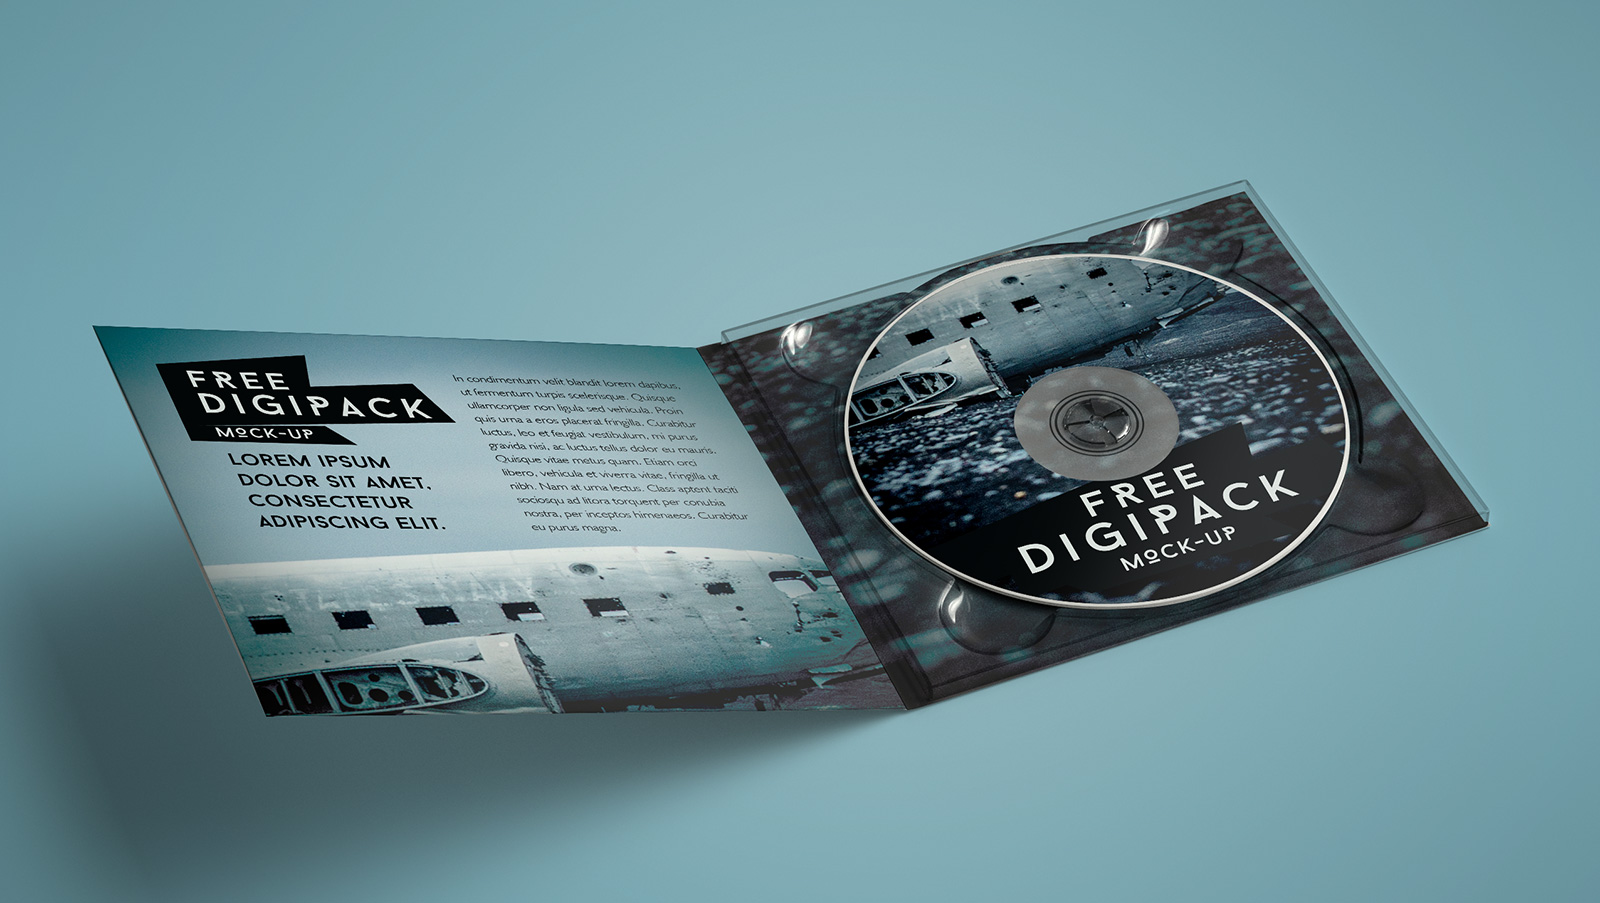 Free-CD-DVD-Disc-Cover-Mockup-PSD-2